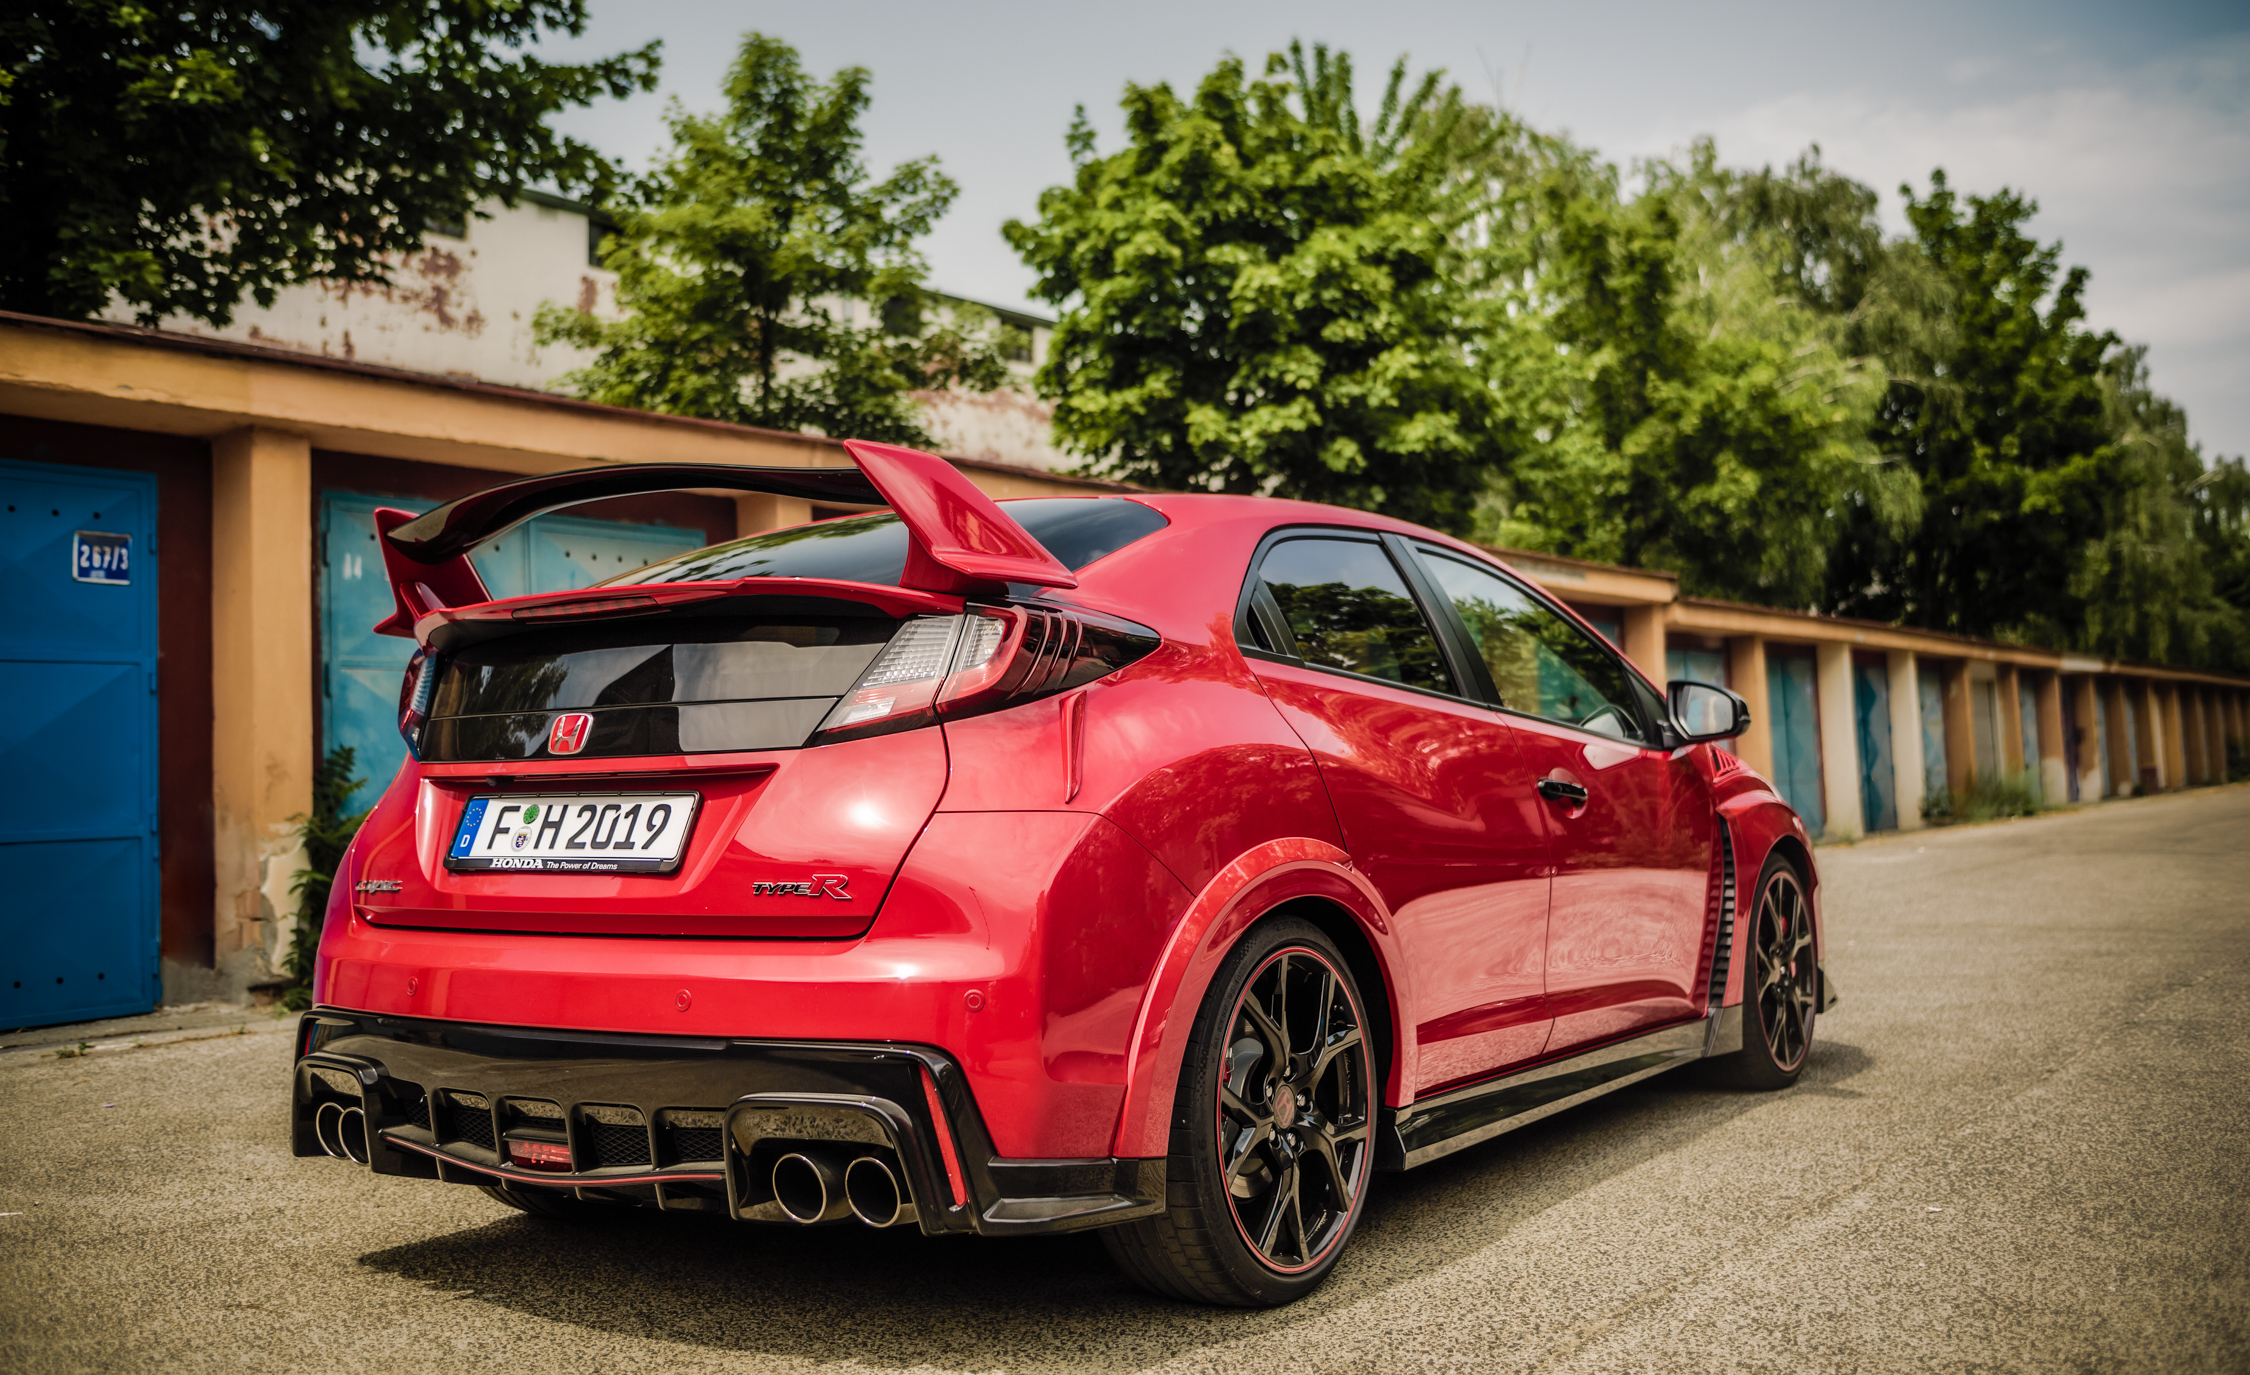 2015 Honda Civic Type R Exterior Full Rear and Side